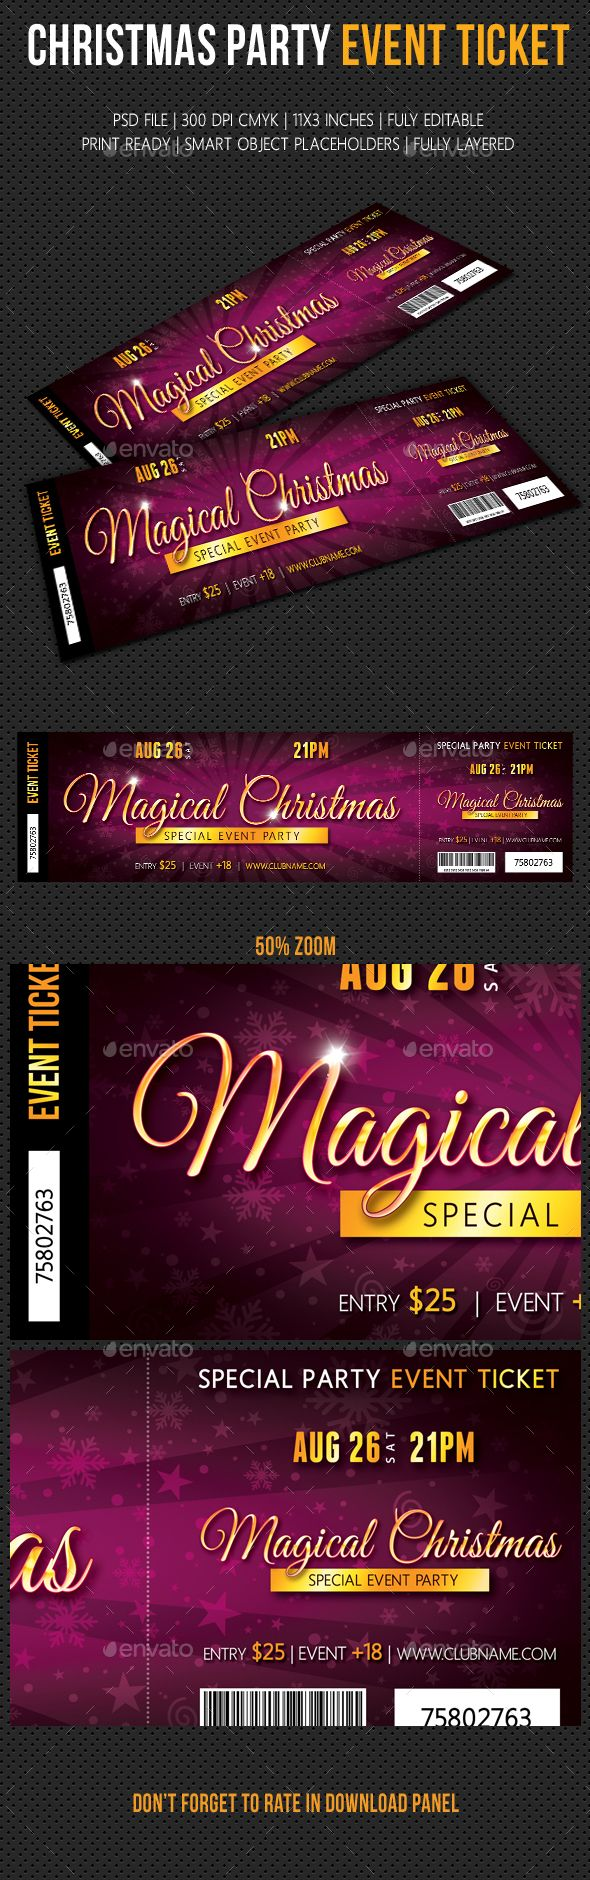 Christmas Party Event Ticket 02 – Christmas Party Tickets Templates